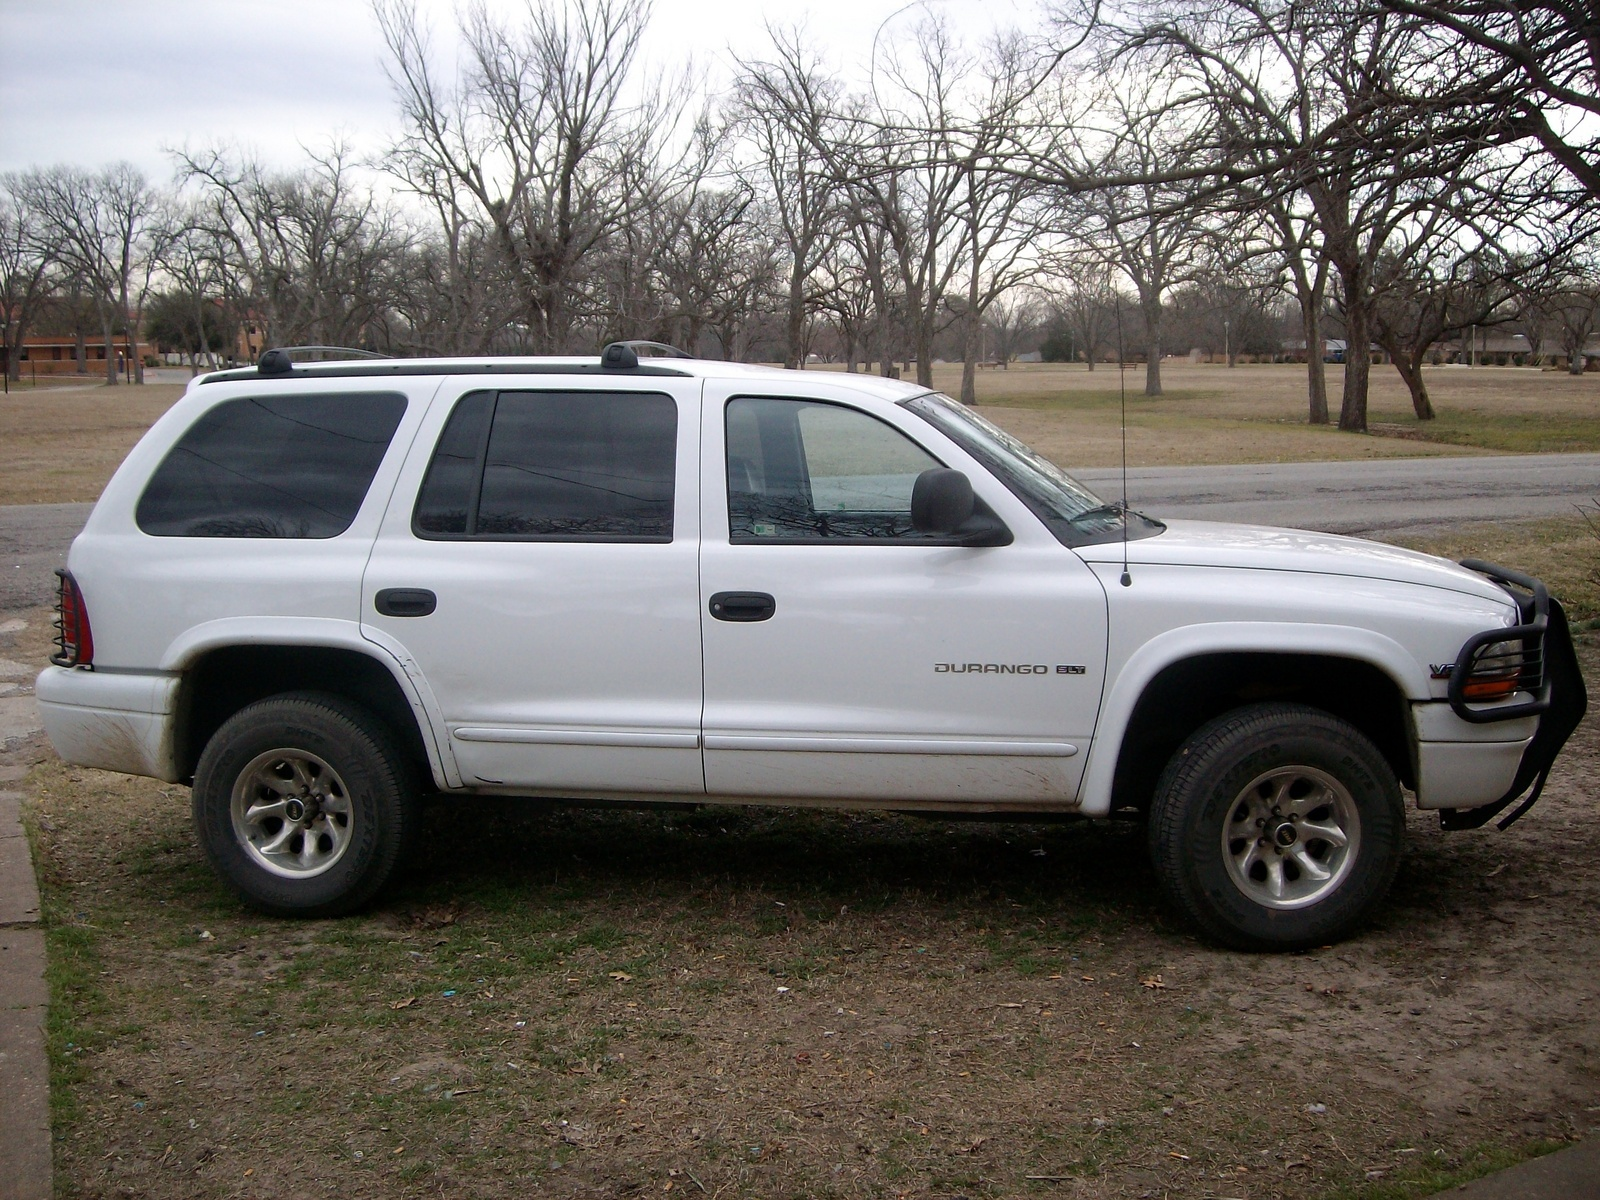 dodge durango questions - i have a 1999 dodge durango an when i